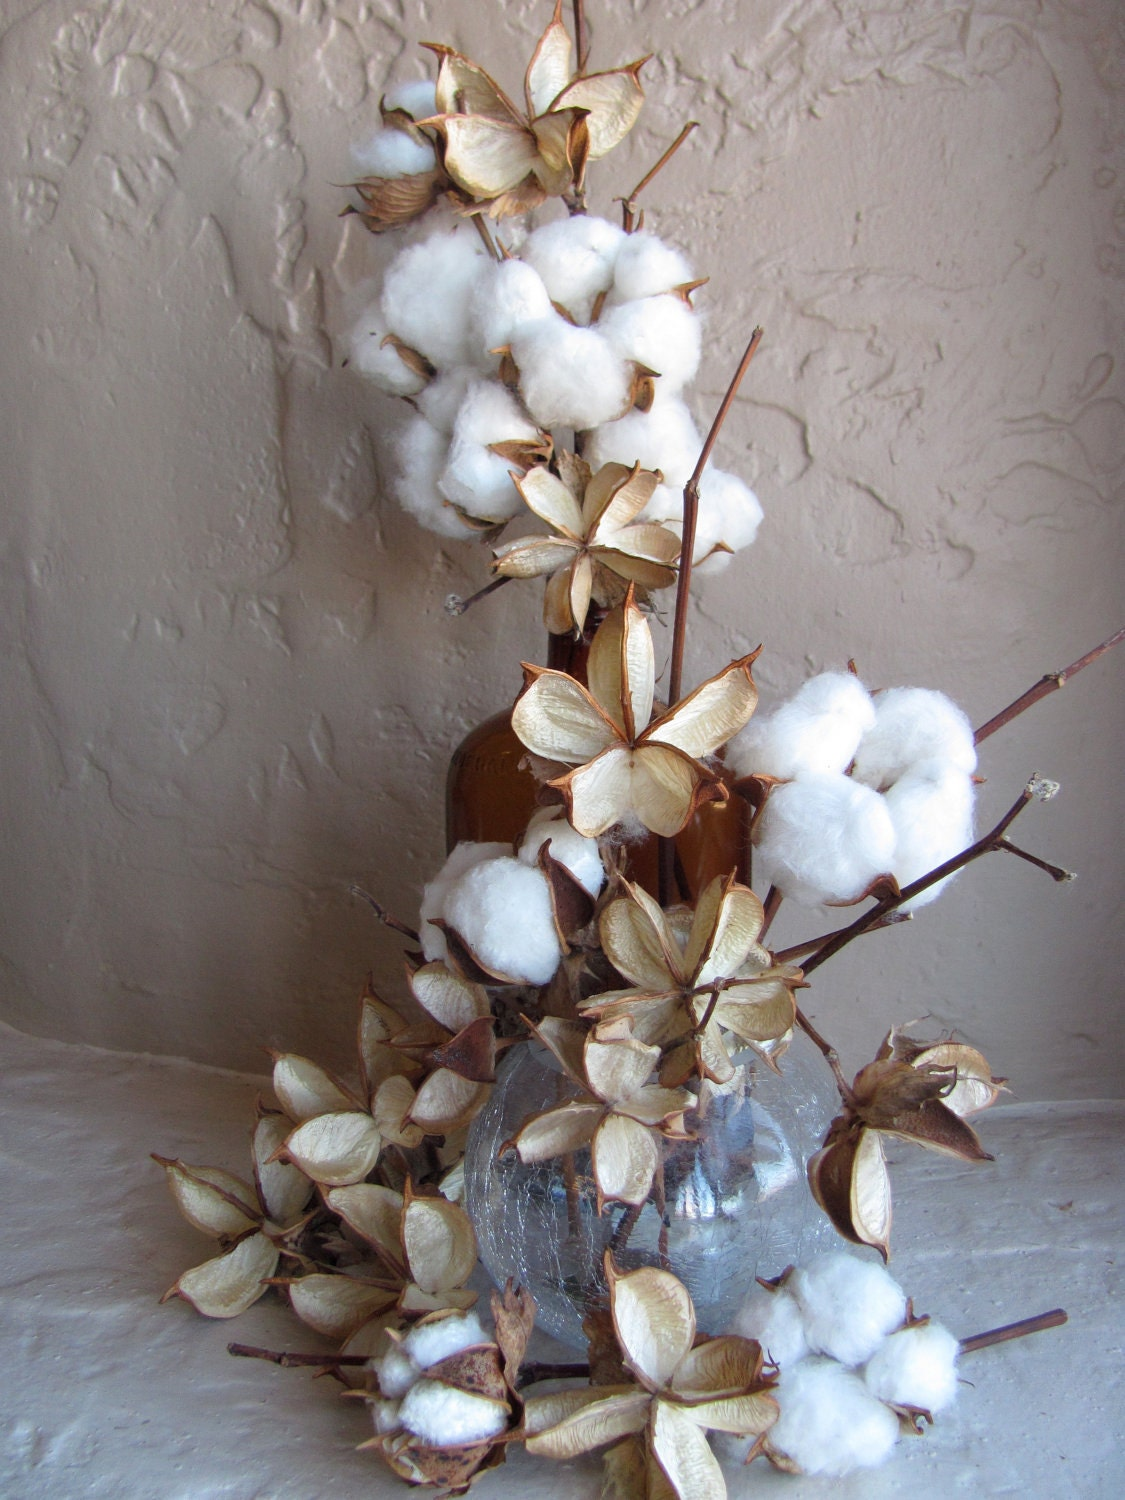 cotton plant divorced singles Introduction is a vegetable fibre obtained from the mature capsule of the cotton plant, a shrub about 40 cm high, with leaves and flowers of a red or yellow colour.